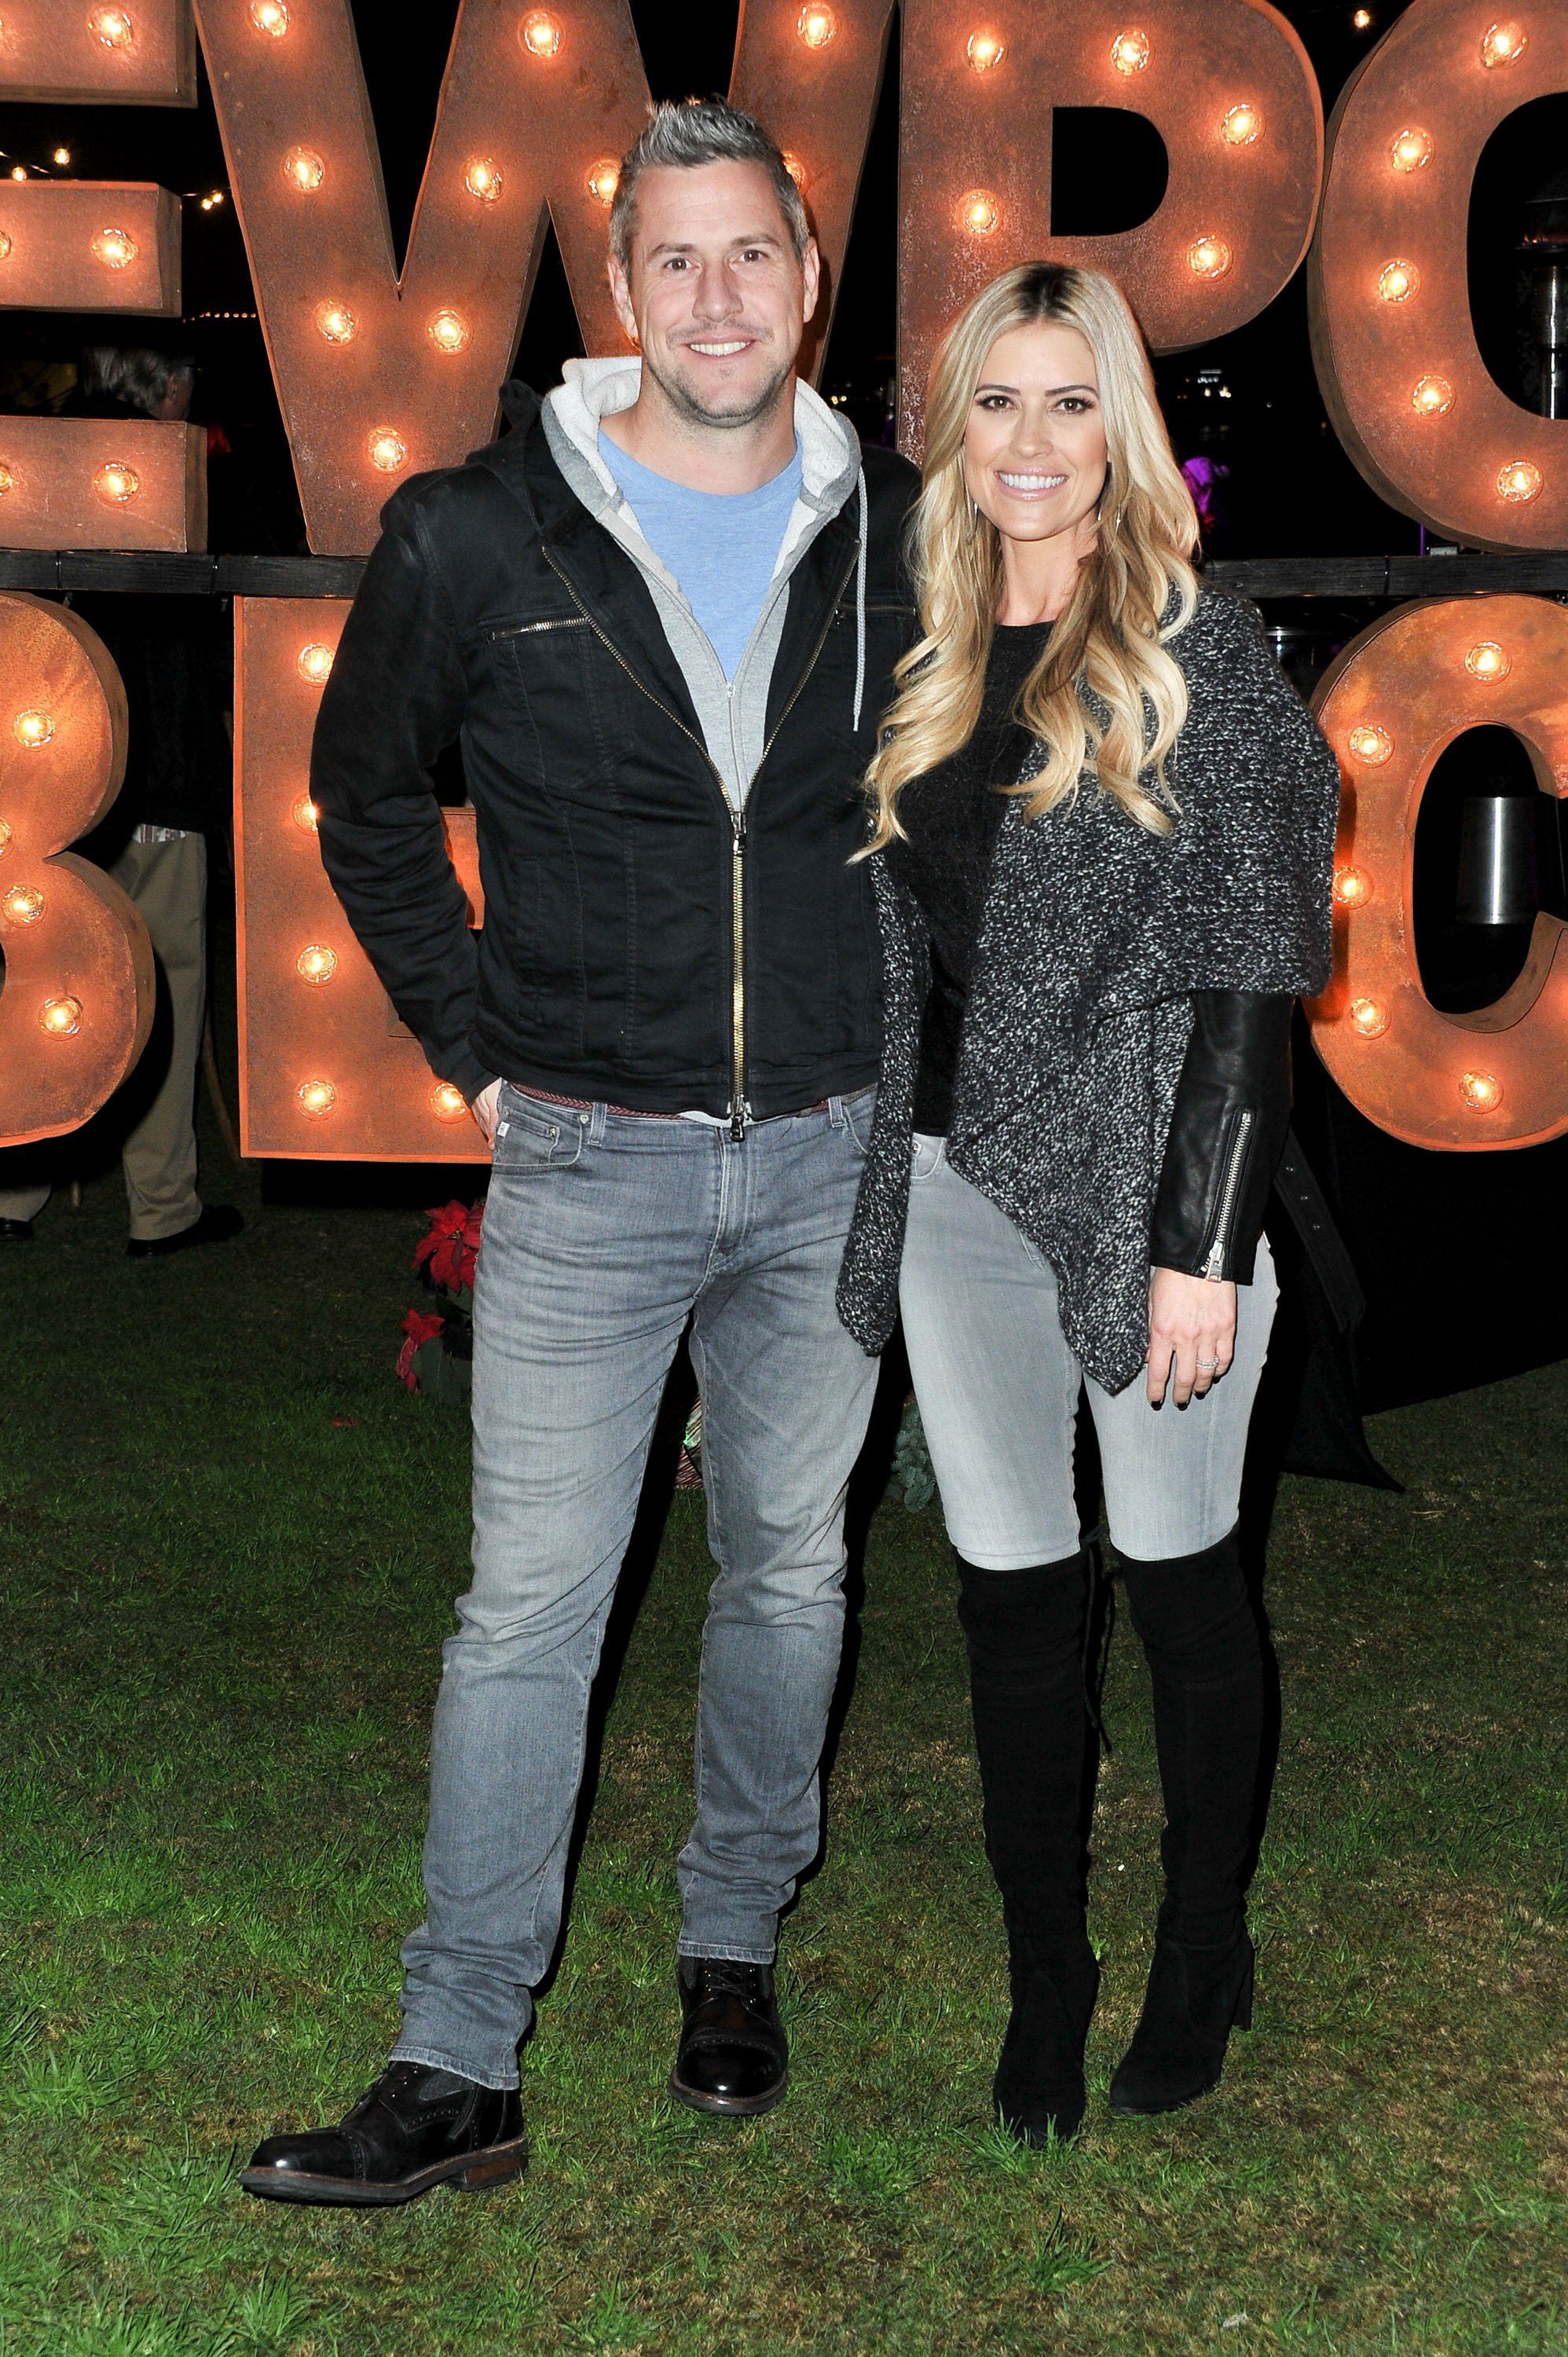 Christina Anstead and Ant Anstead at the 111th Annual Newport Beach Christmas Boat Parade opening night on December 18, 2019. | Photo: Getty Images.